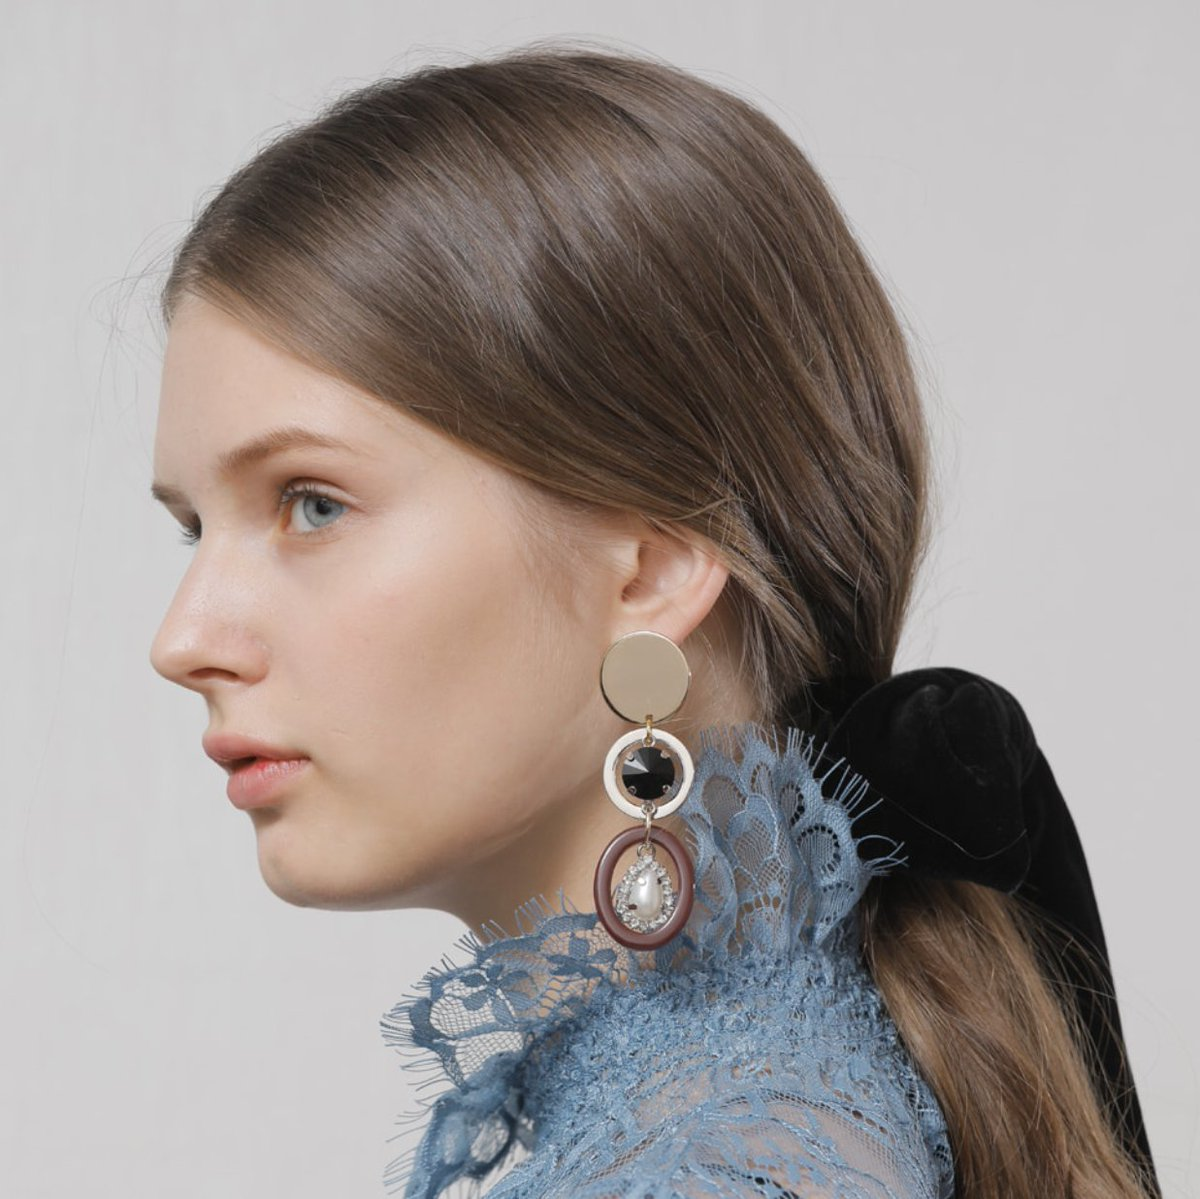 Statement earrings have not been in trend up until recently, since the 80s. Perfect to add some unique character to any minimalist outfit #katelogy #statement #fashionjewelry #trend #fashiontrend #musthave #earrings #jewelry https://t.co/RjJBVaMCkL